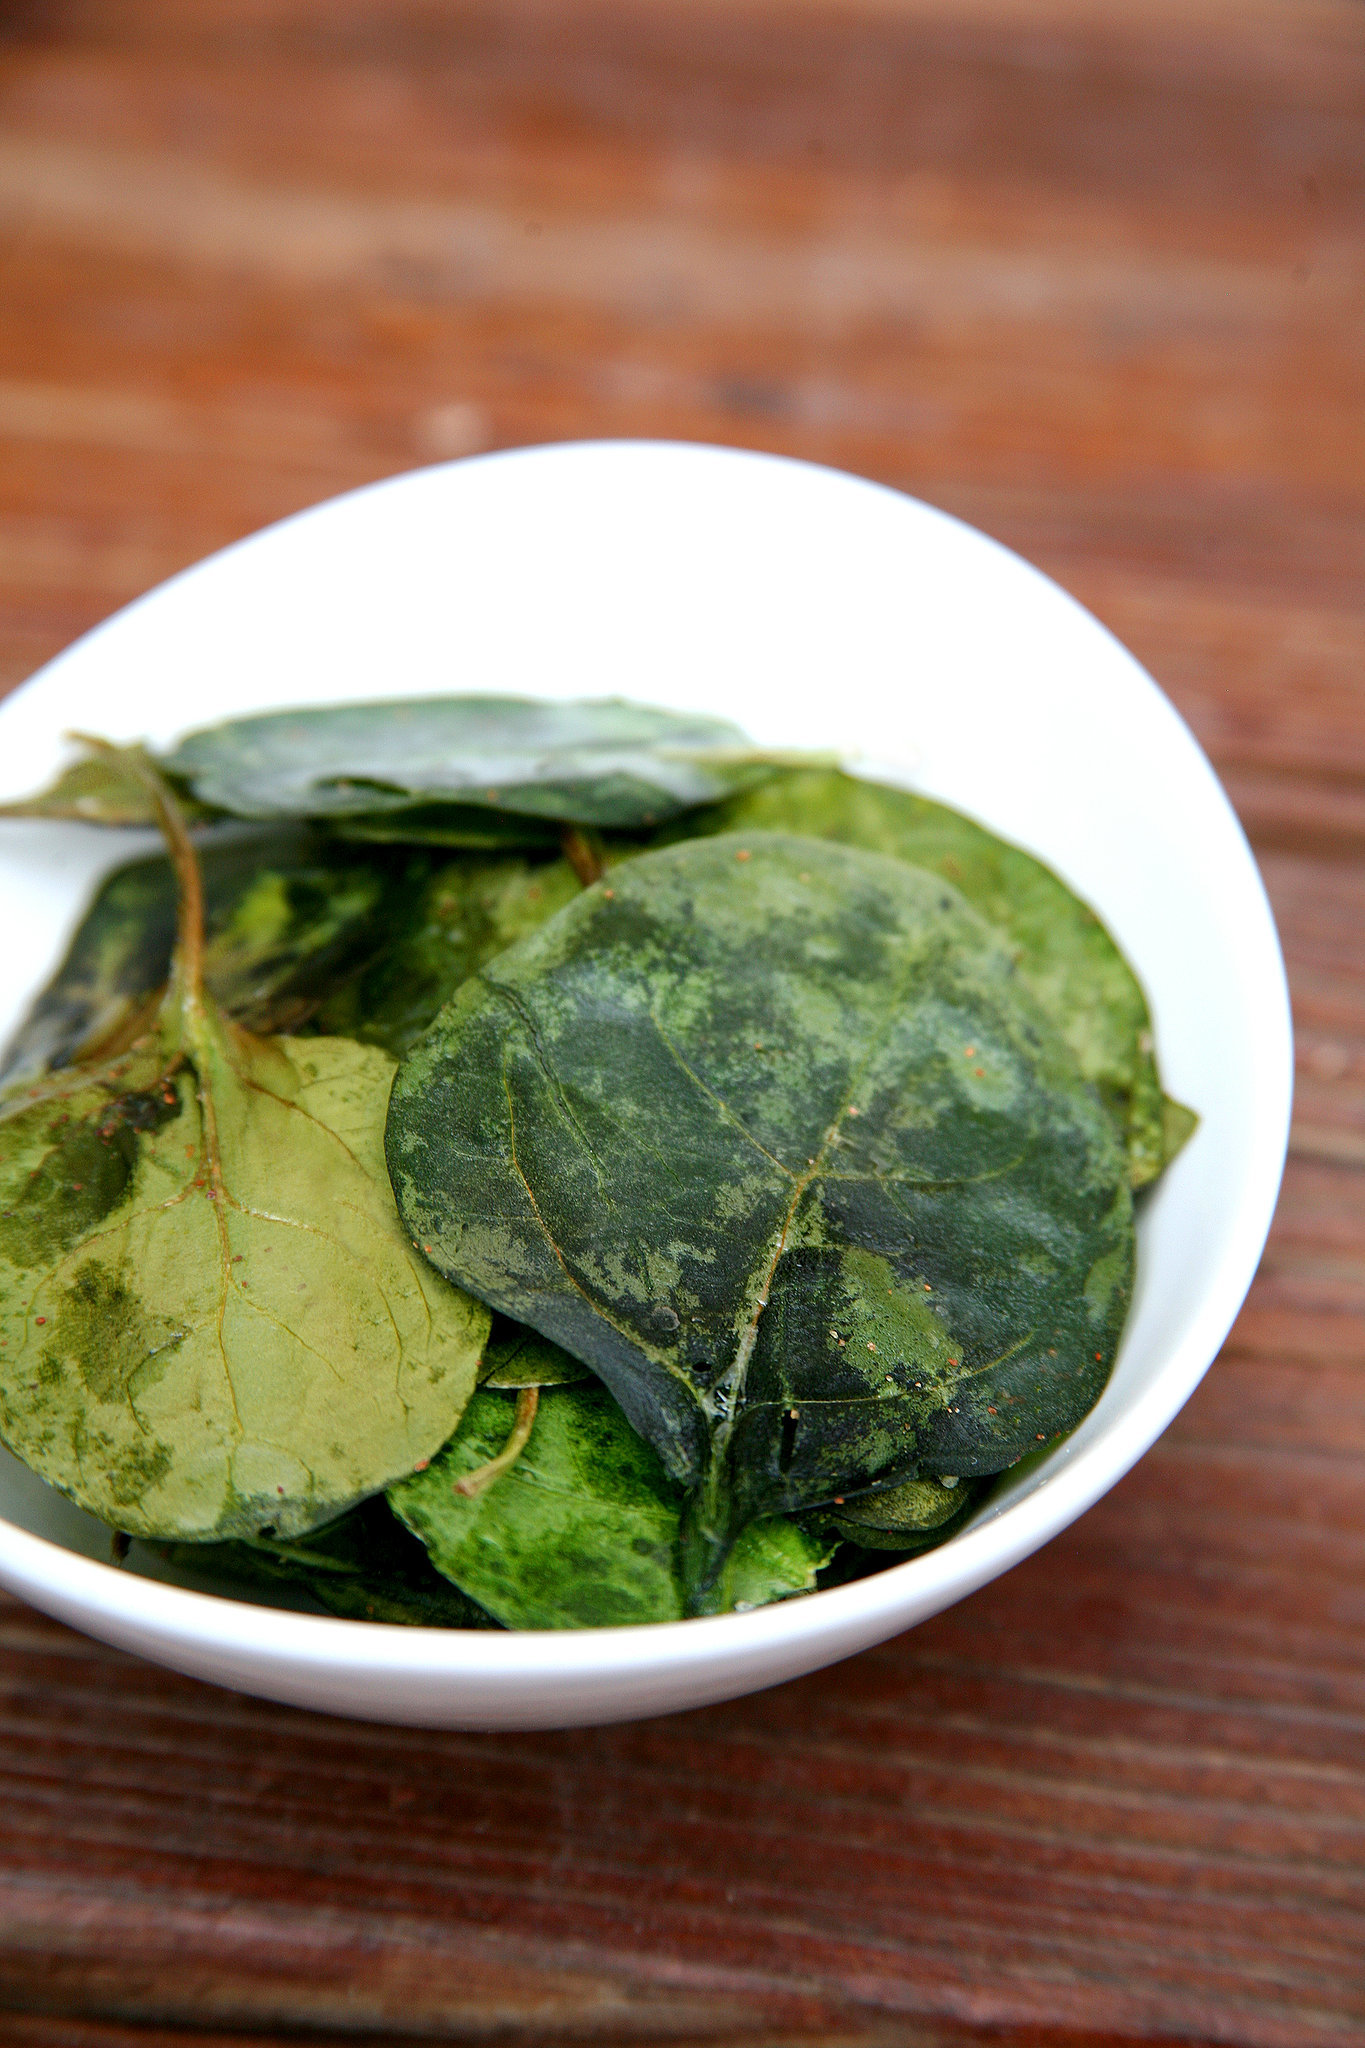 You can buy prewashed baby spinach, which makes this snack even faster ...